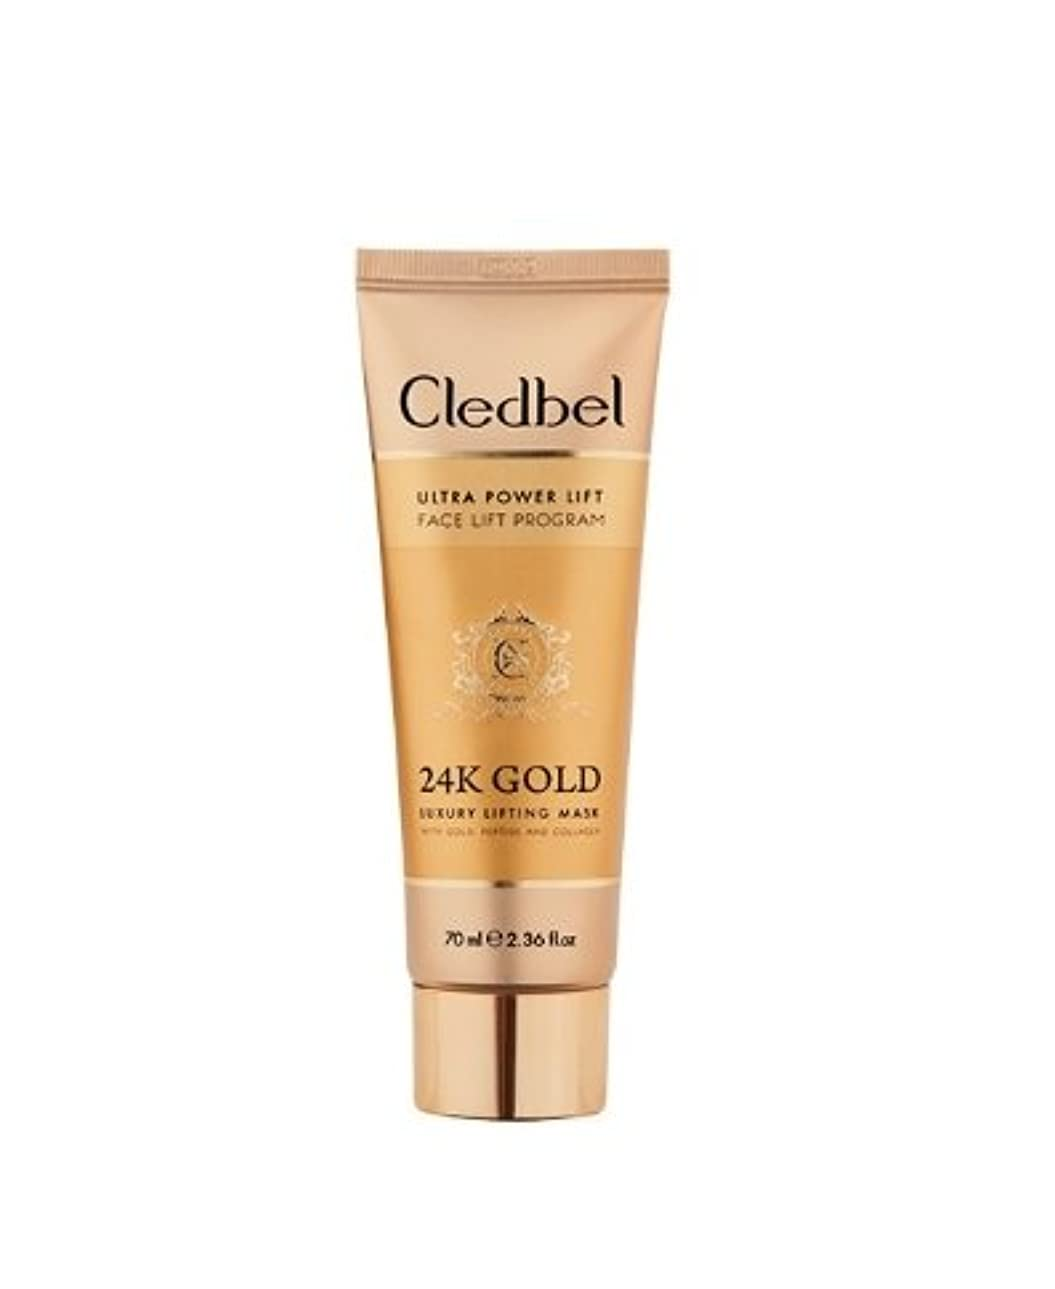 脱走時間とともに不忠[Cledbel]Cledbel Ultra Power Lift 24K Gold Luxury Lifting Mask 70ml